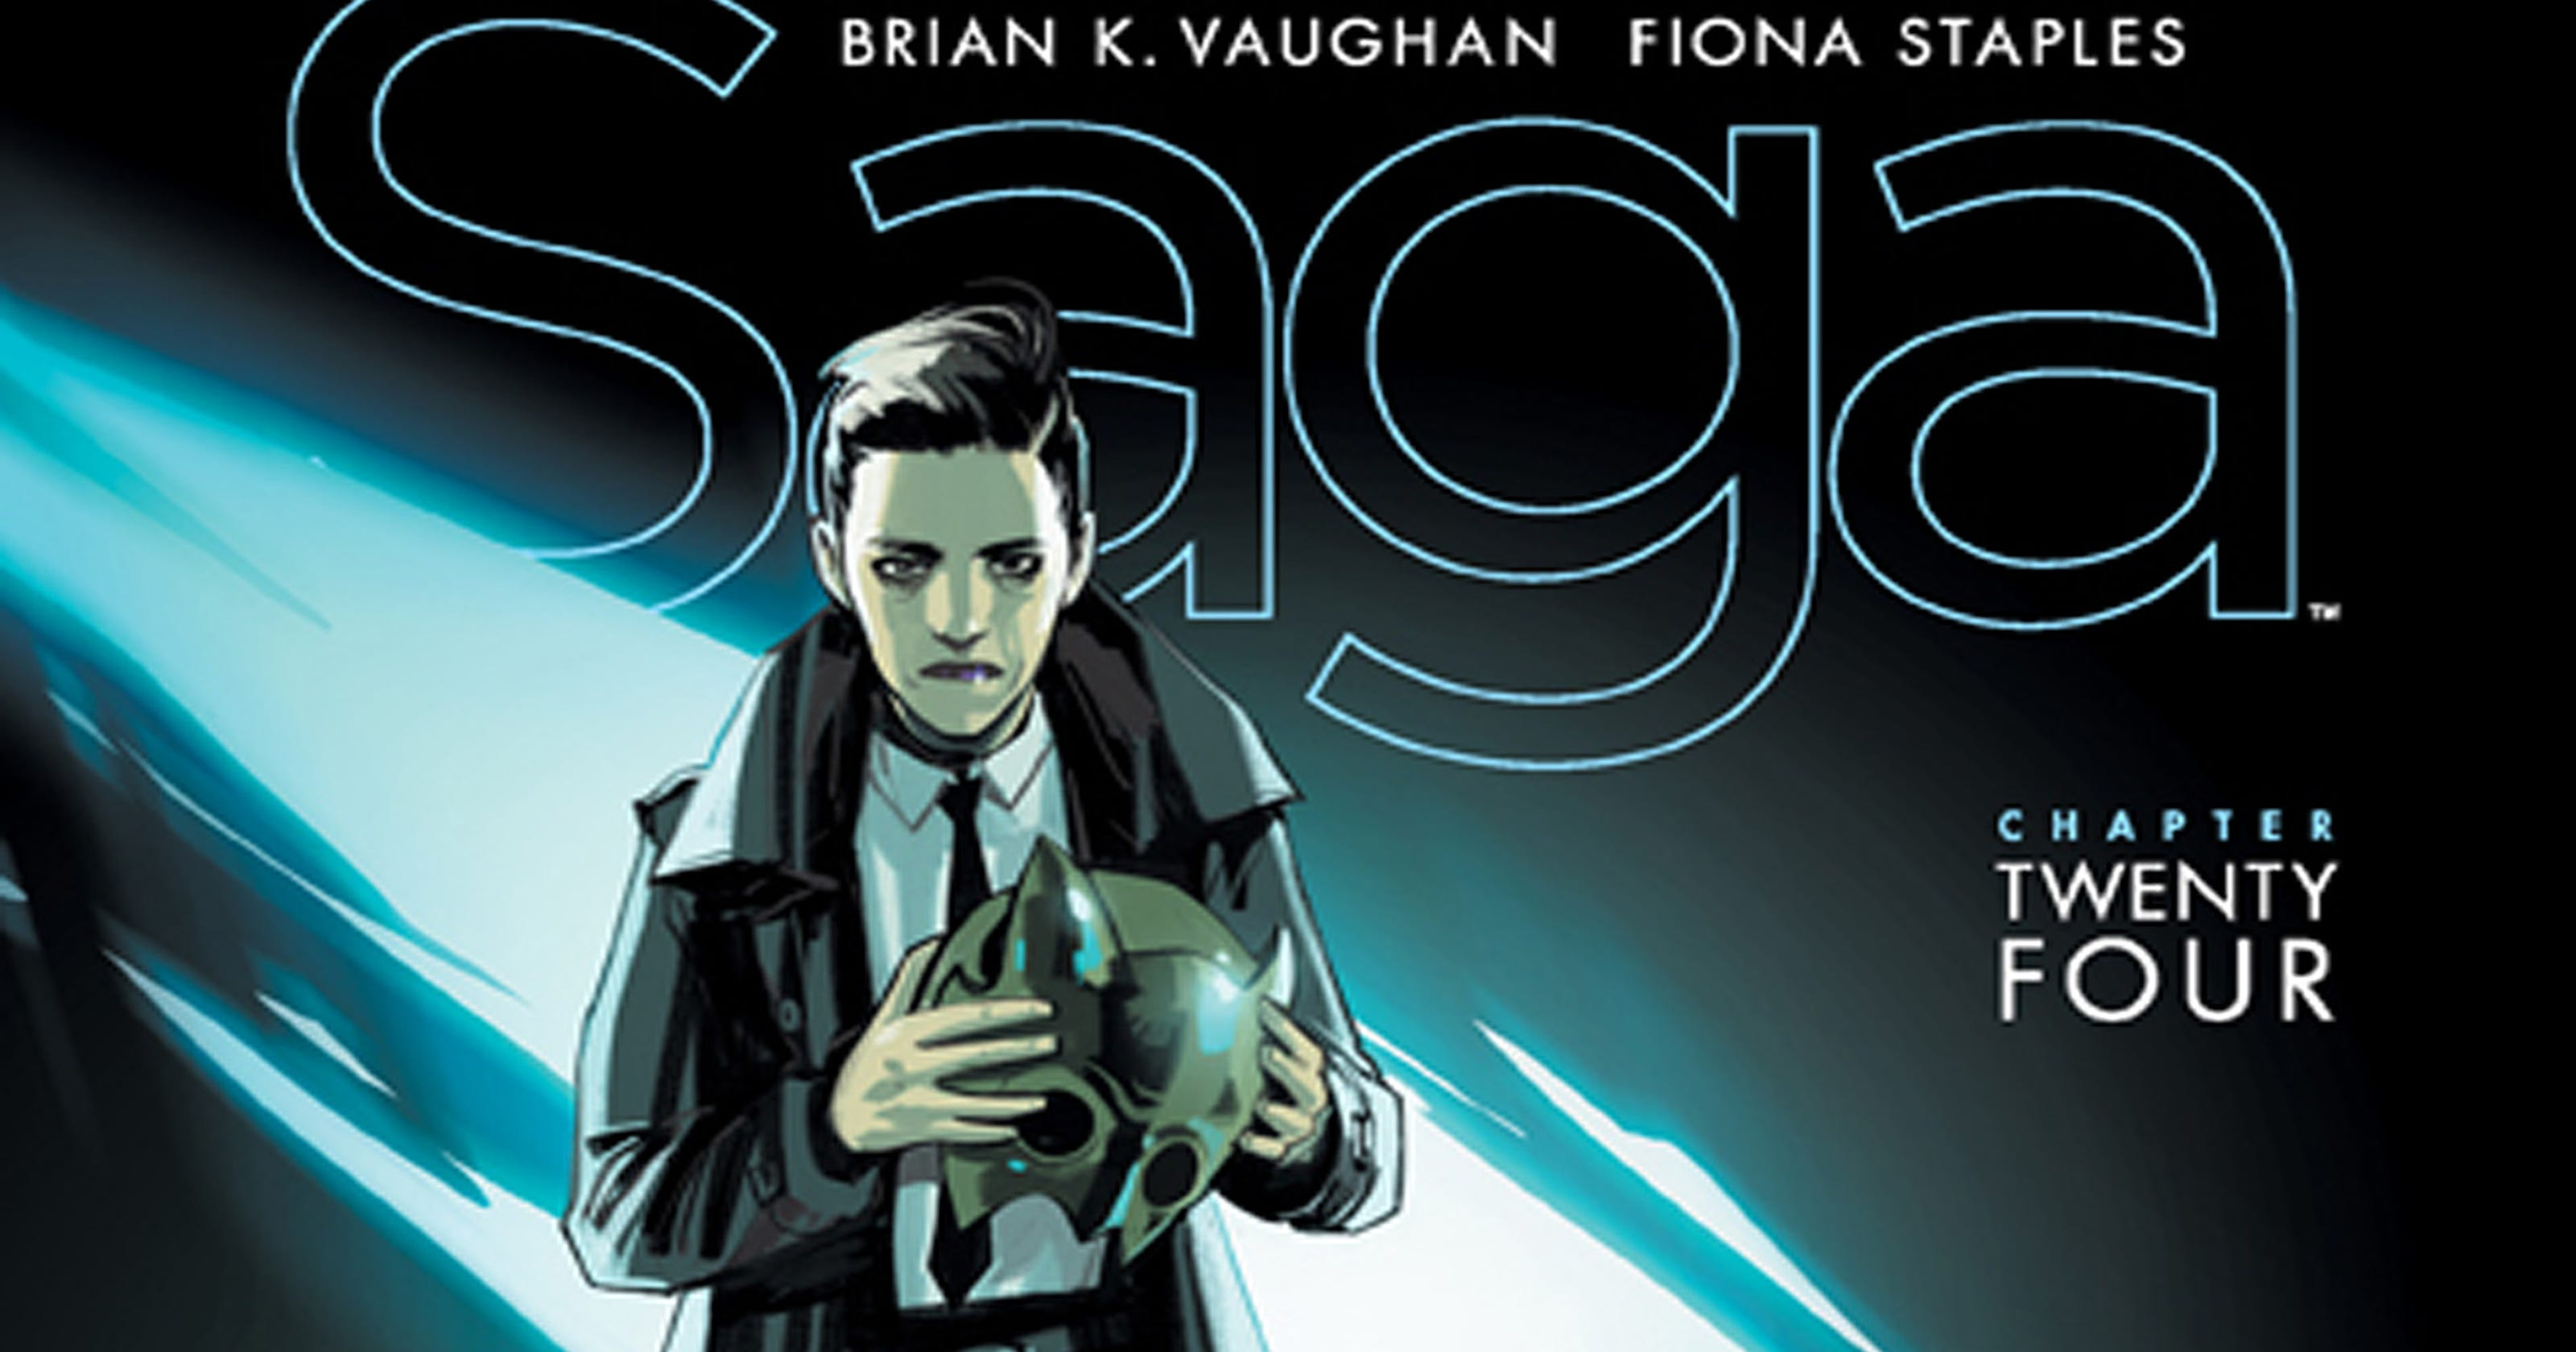 2014 in comic books: Snyder, \'Saga\' continue greatness